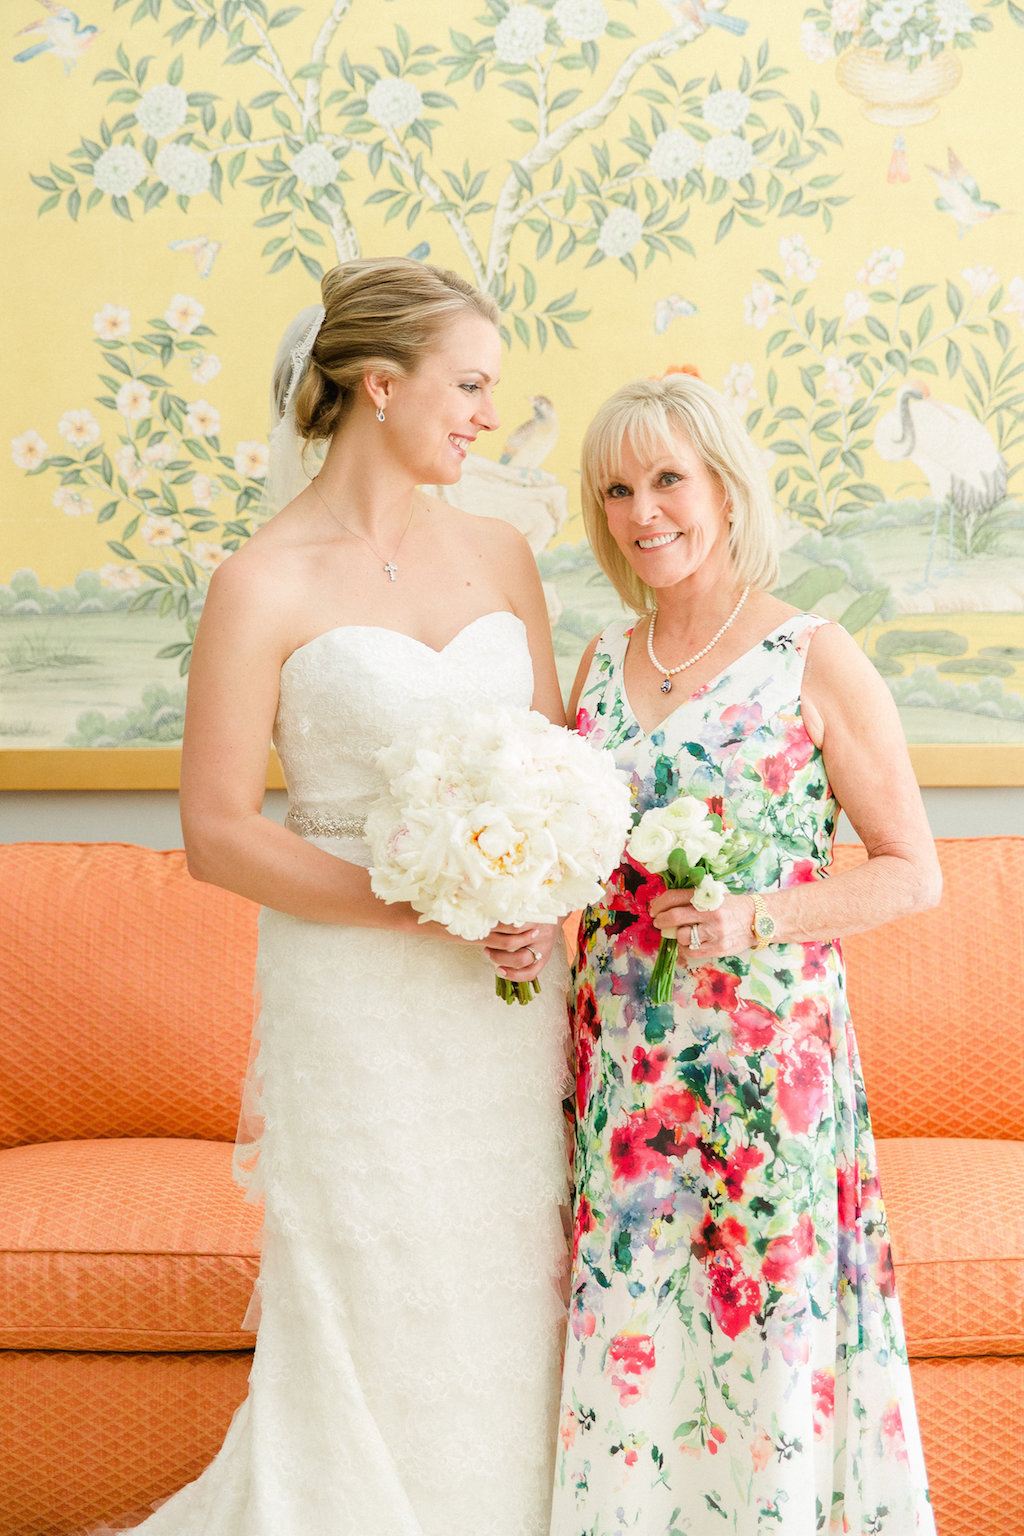 Bride and Mother of the Bride Floral Wedding Day Portrait   Tampa Bay Wedding Photographer Ailyn La Torre Photography